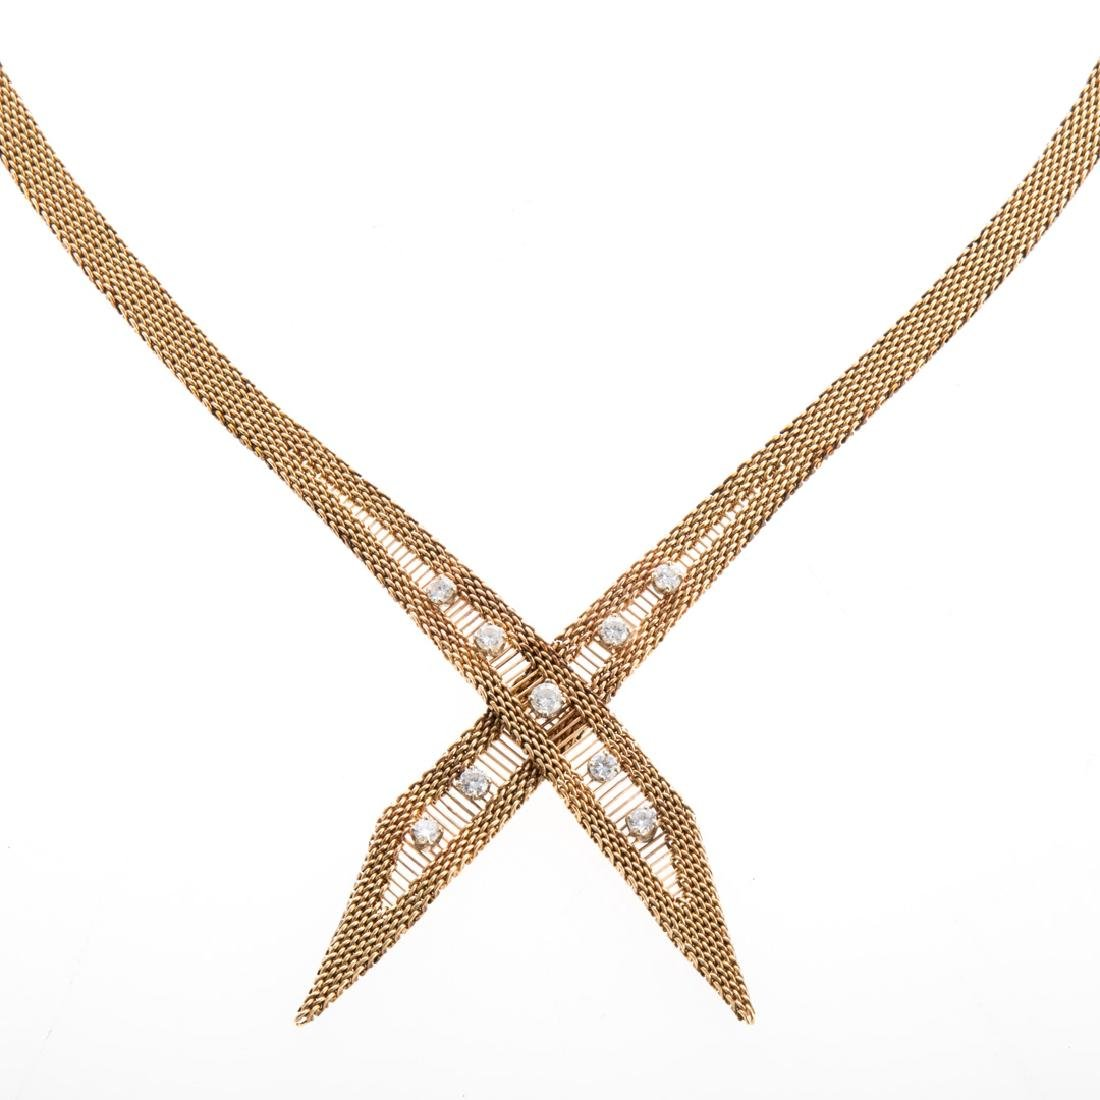 A Lady's Ribbon Diamond Necklace in 14K